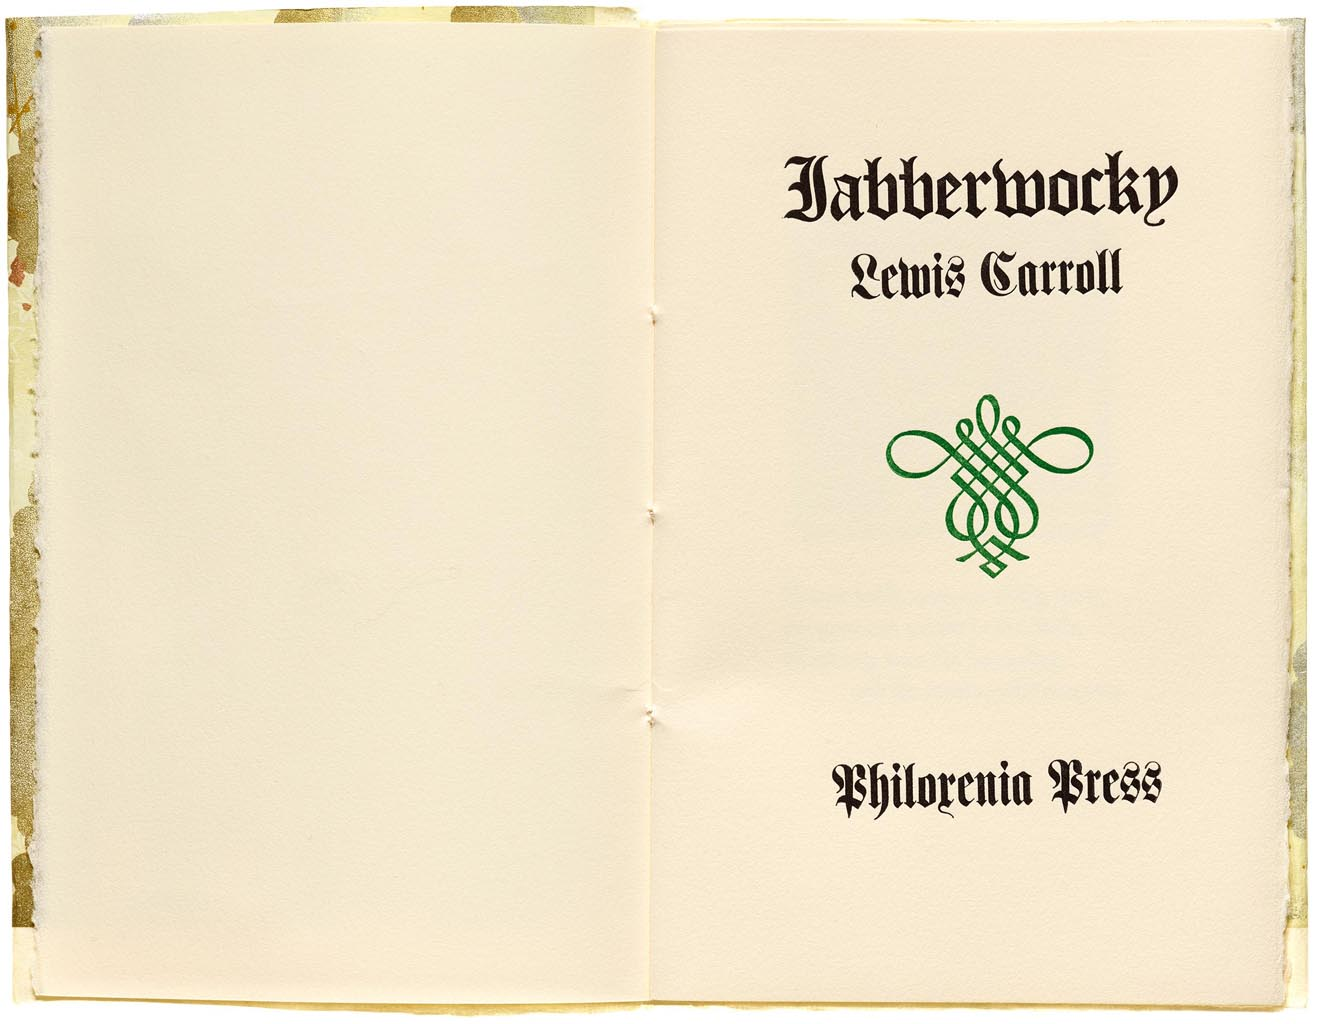 Title page to the Jabberwocky